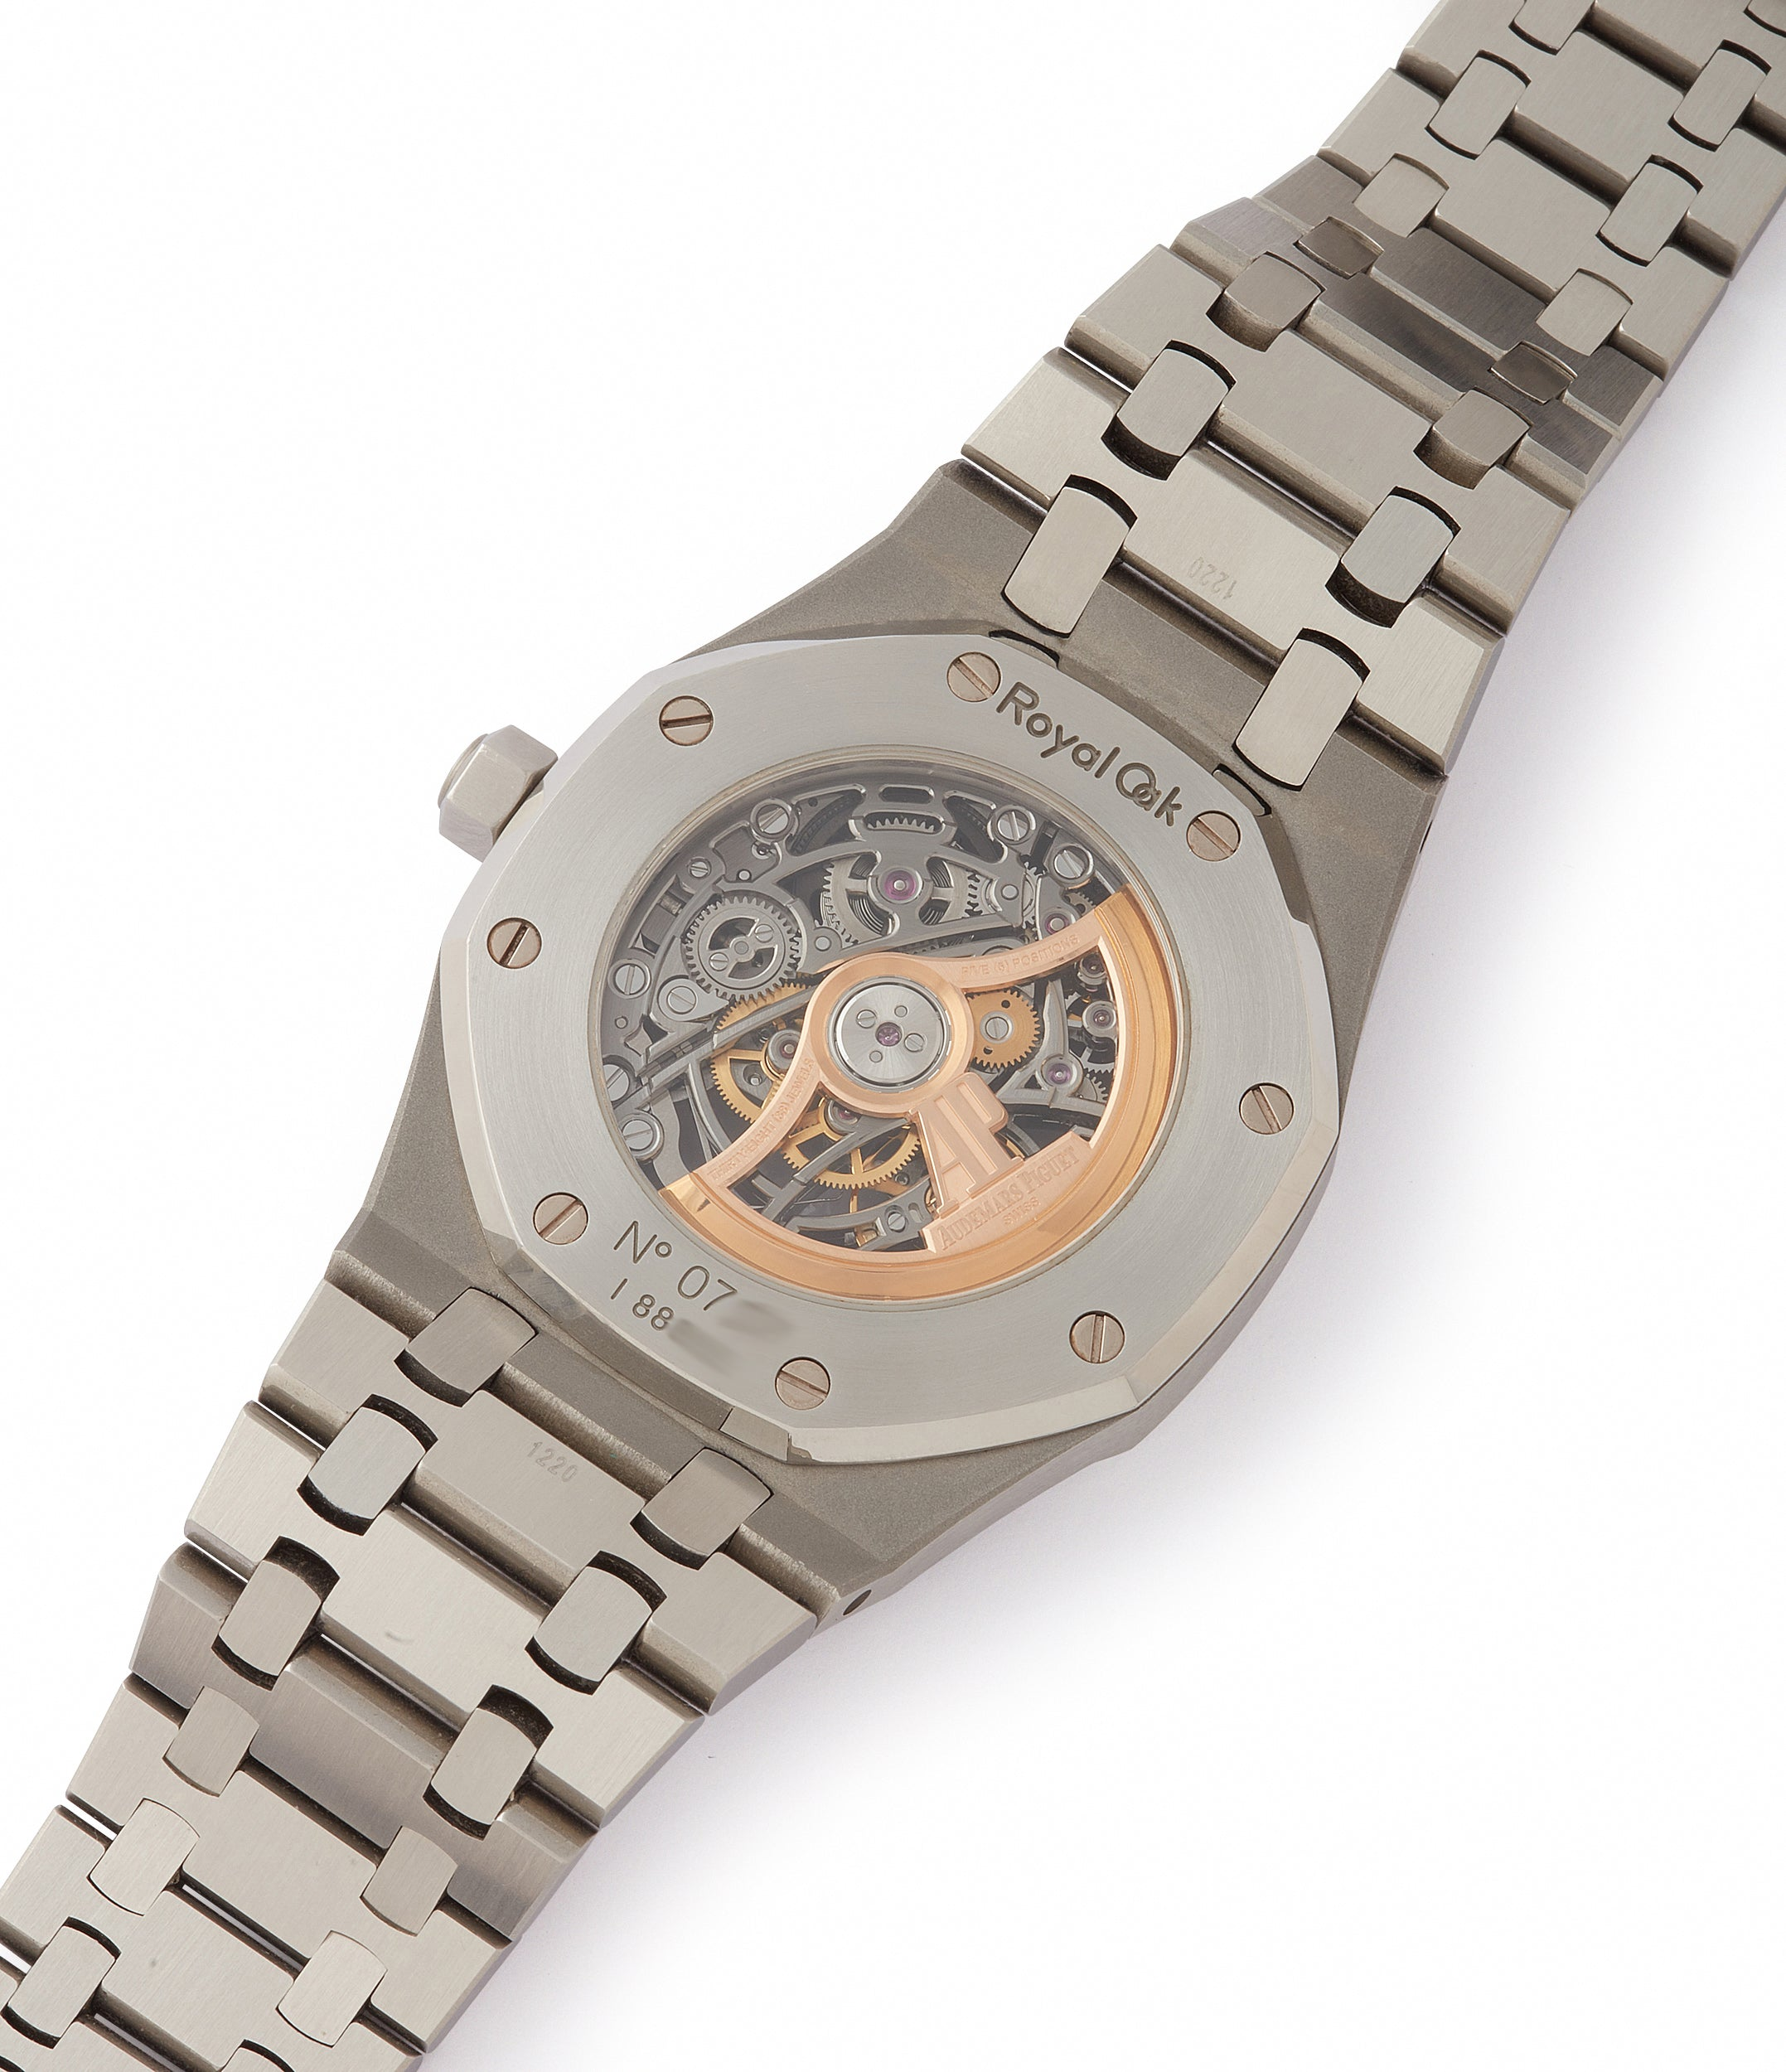 AP3129 automatic Audemars Piguet Royal Oak skeletonised 15305ST steel watch for sale online at A Collected Man London UK specialist of rare watches